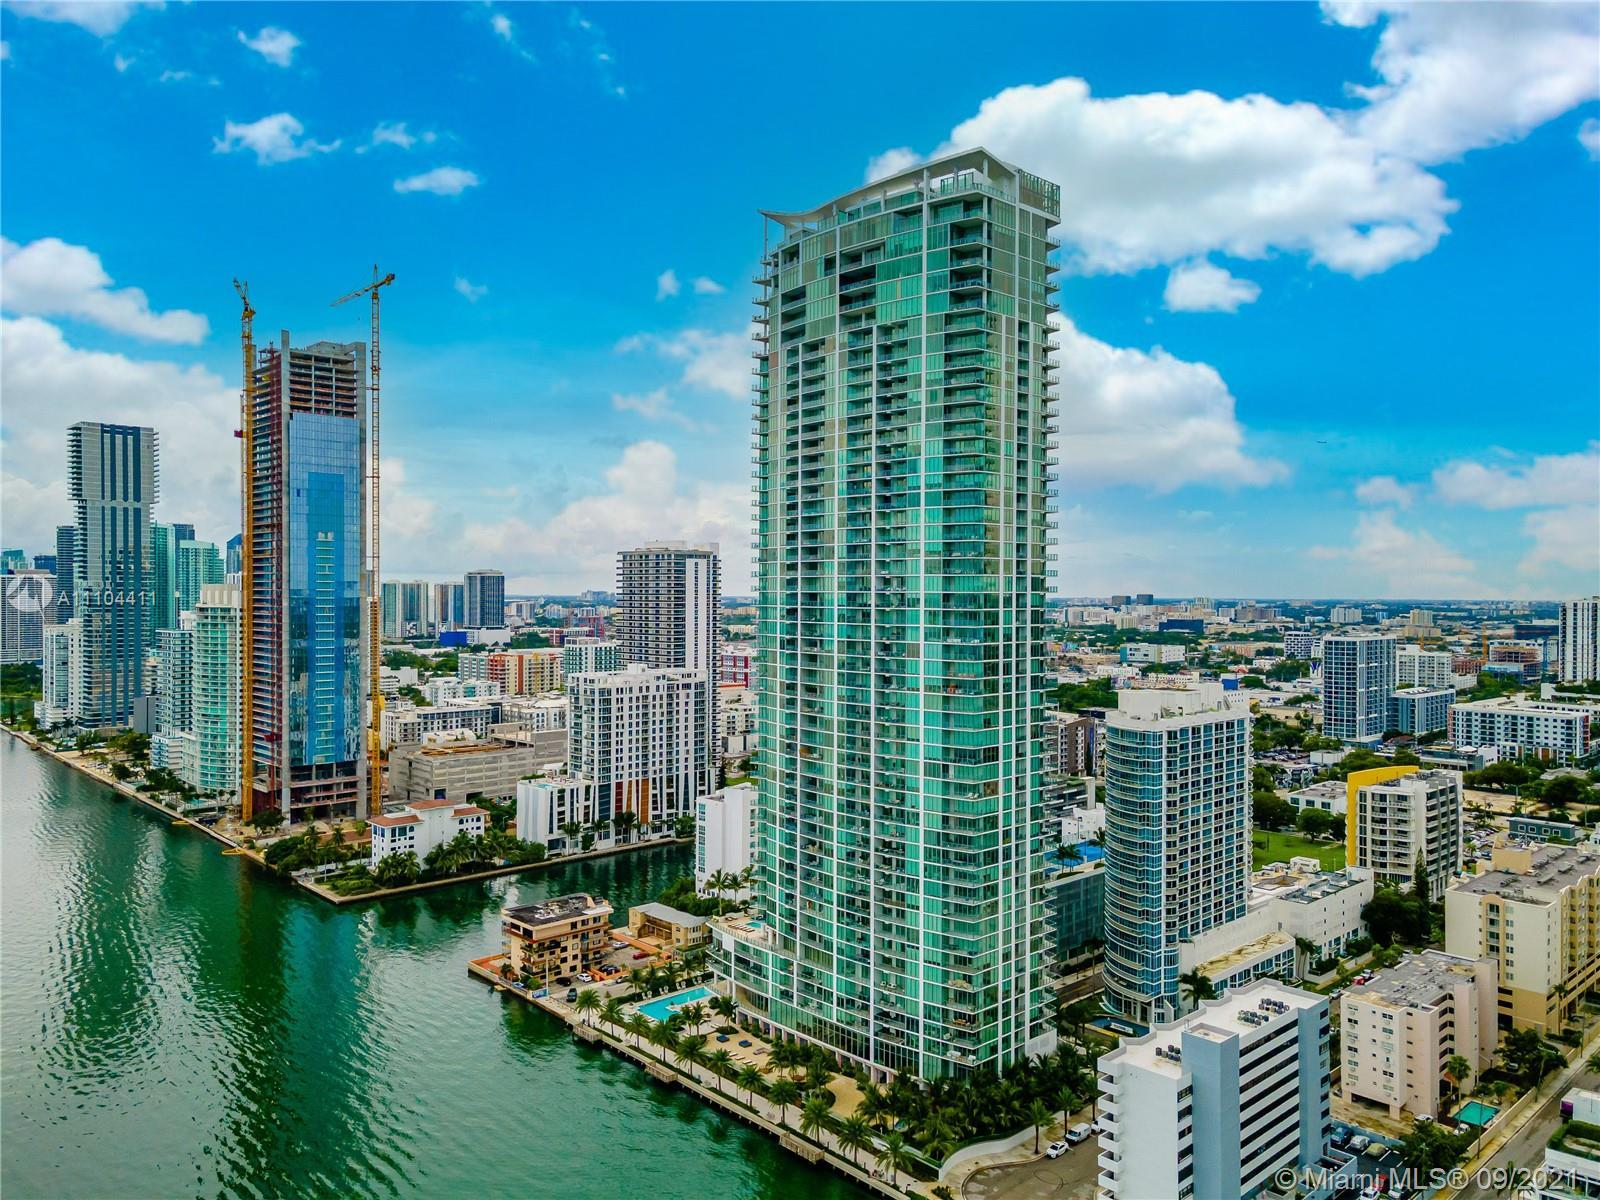 Miami Riches presents 3 bed plus DEN and 4 bathrooms at Biscayne Beach condo. Enjoy amazing views of